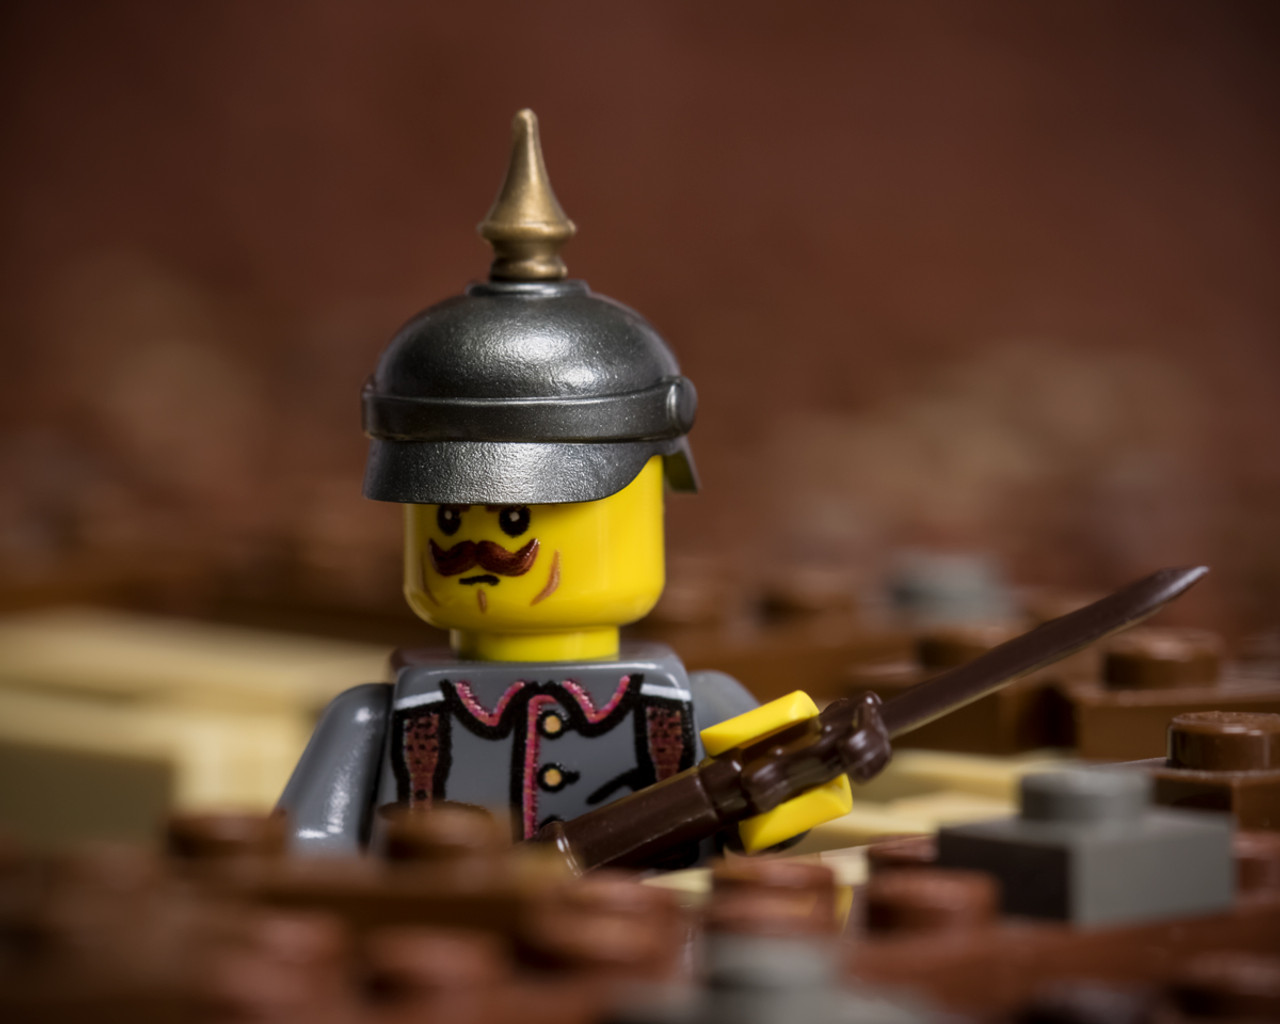 BrickArms Pickelhaube Helmet